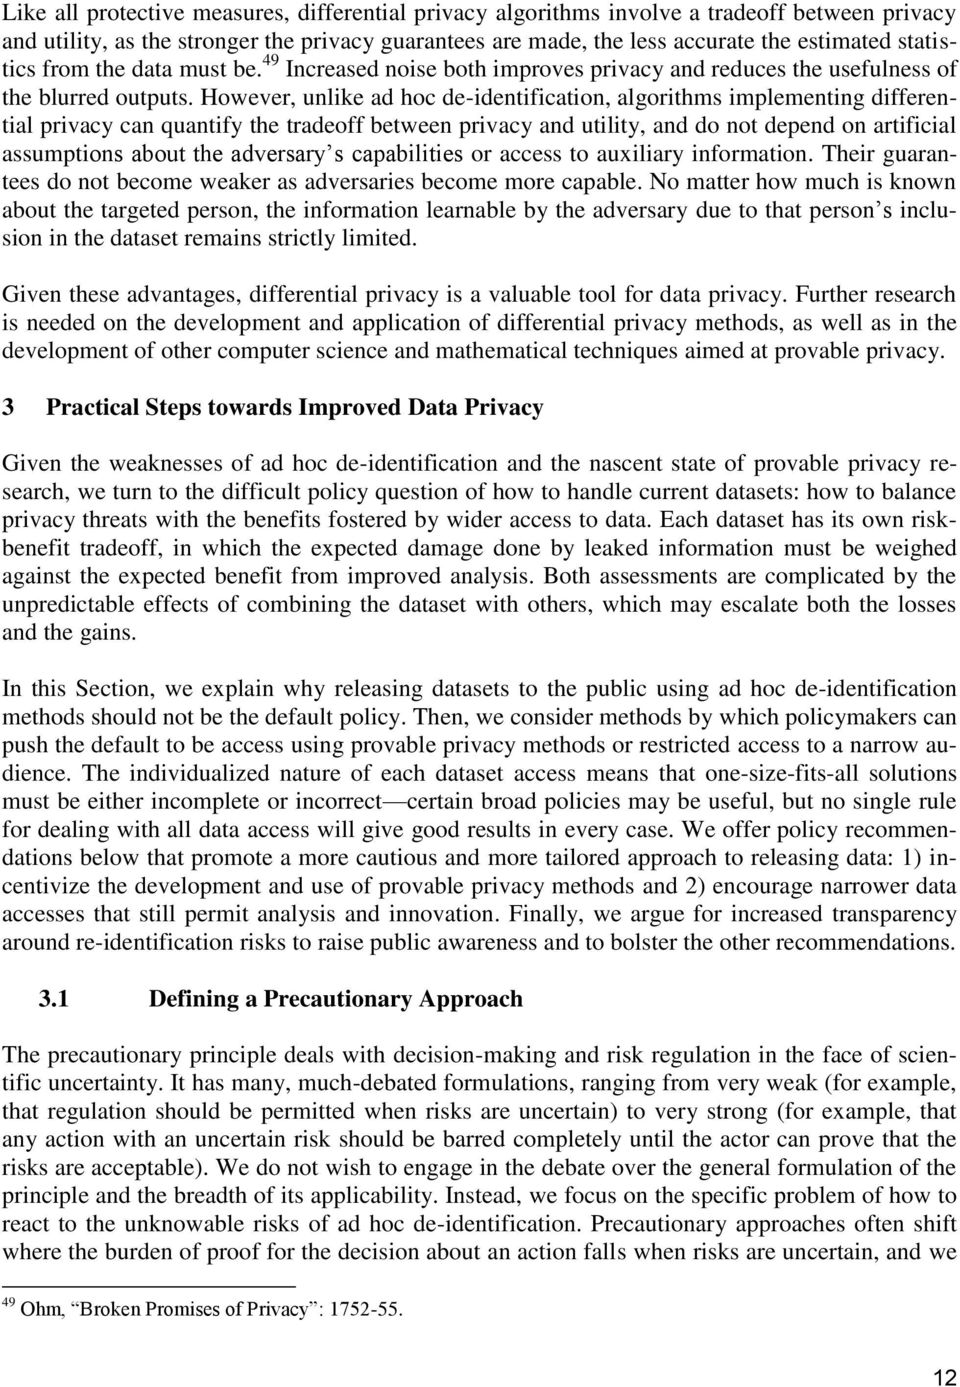 However, unlike ad hoc de-identification, algorithms implementing differential privacy can quantify the tradeoff between privacy and utility, and do not depend on artificial assumptions about the